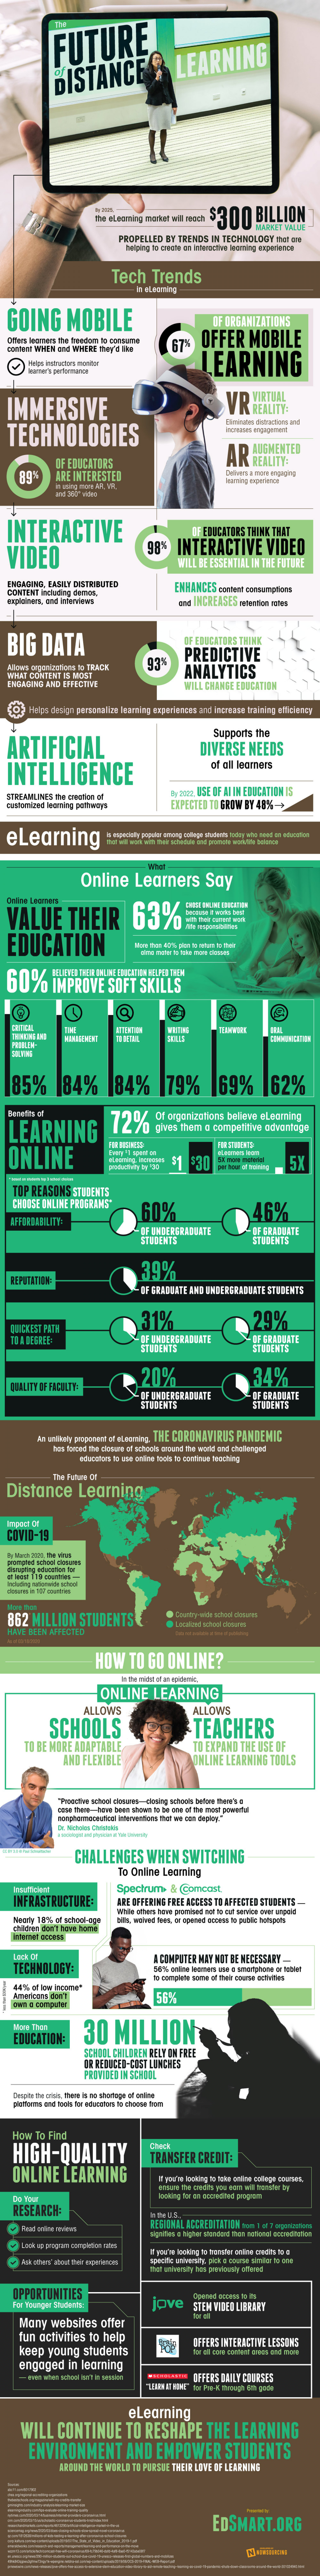 How COVID-19 Impacts eLearning Infographic